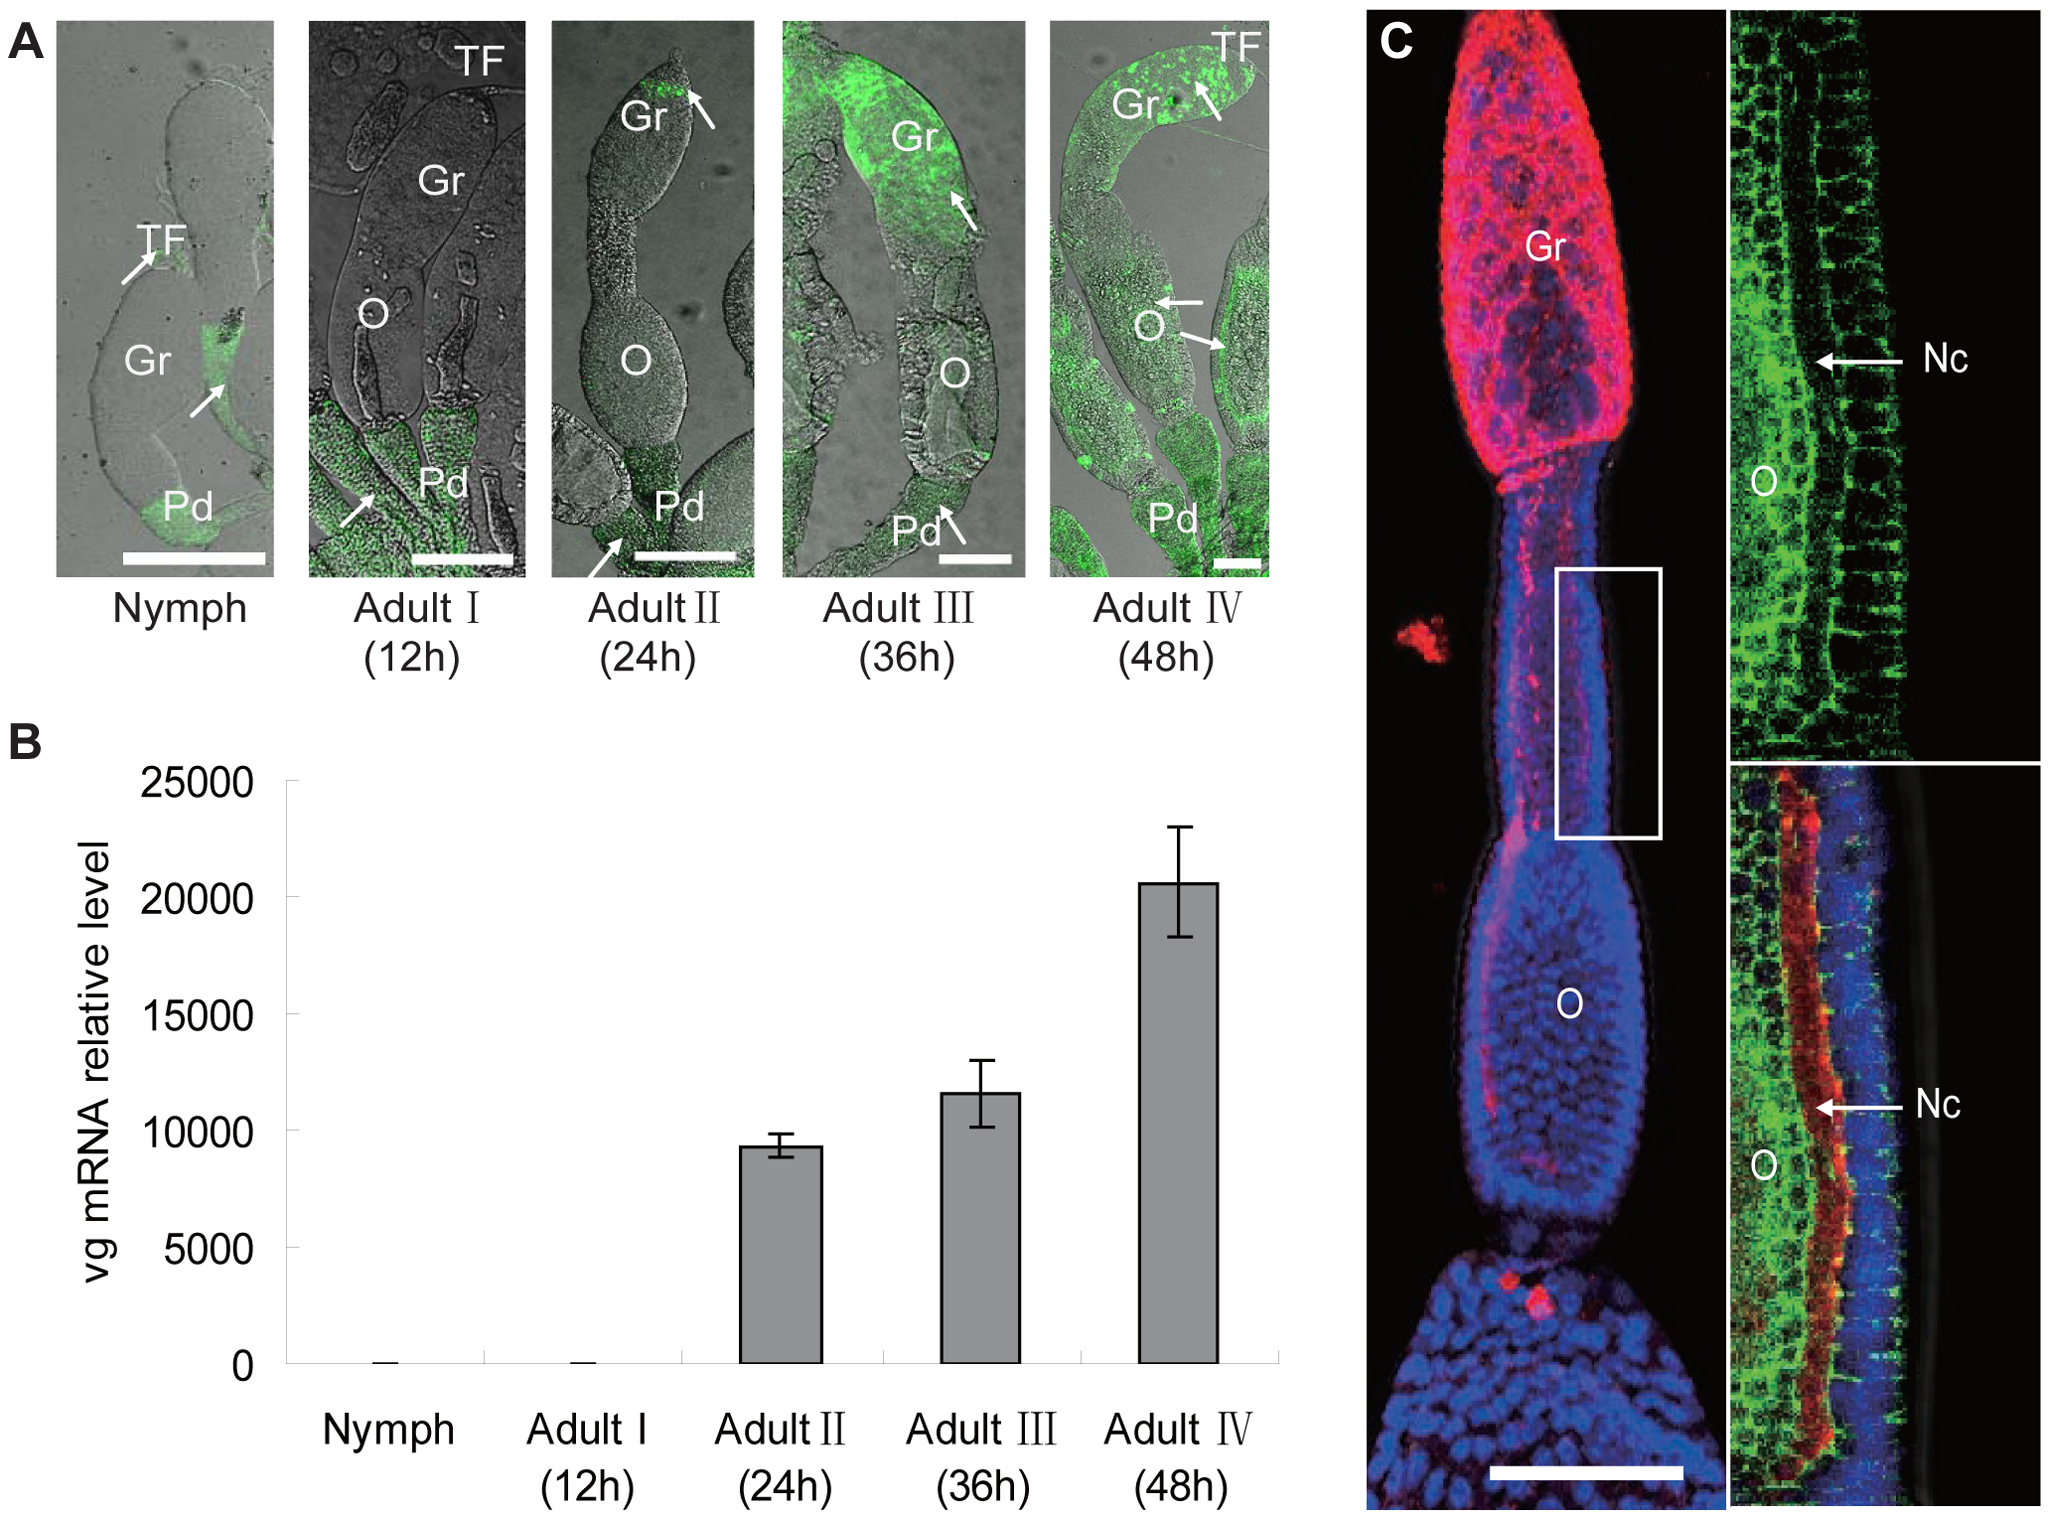 Localization of RSV in ovaries of <i>Laodelphax striatellus</i> at different stages of ovarian development.